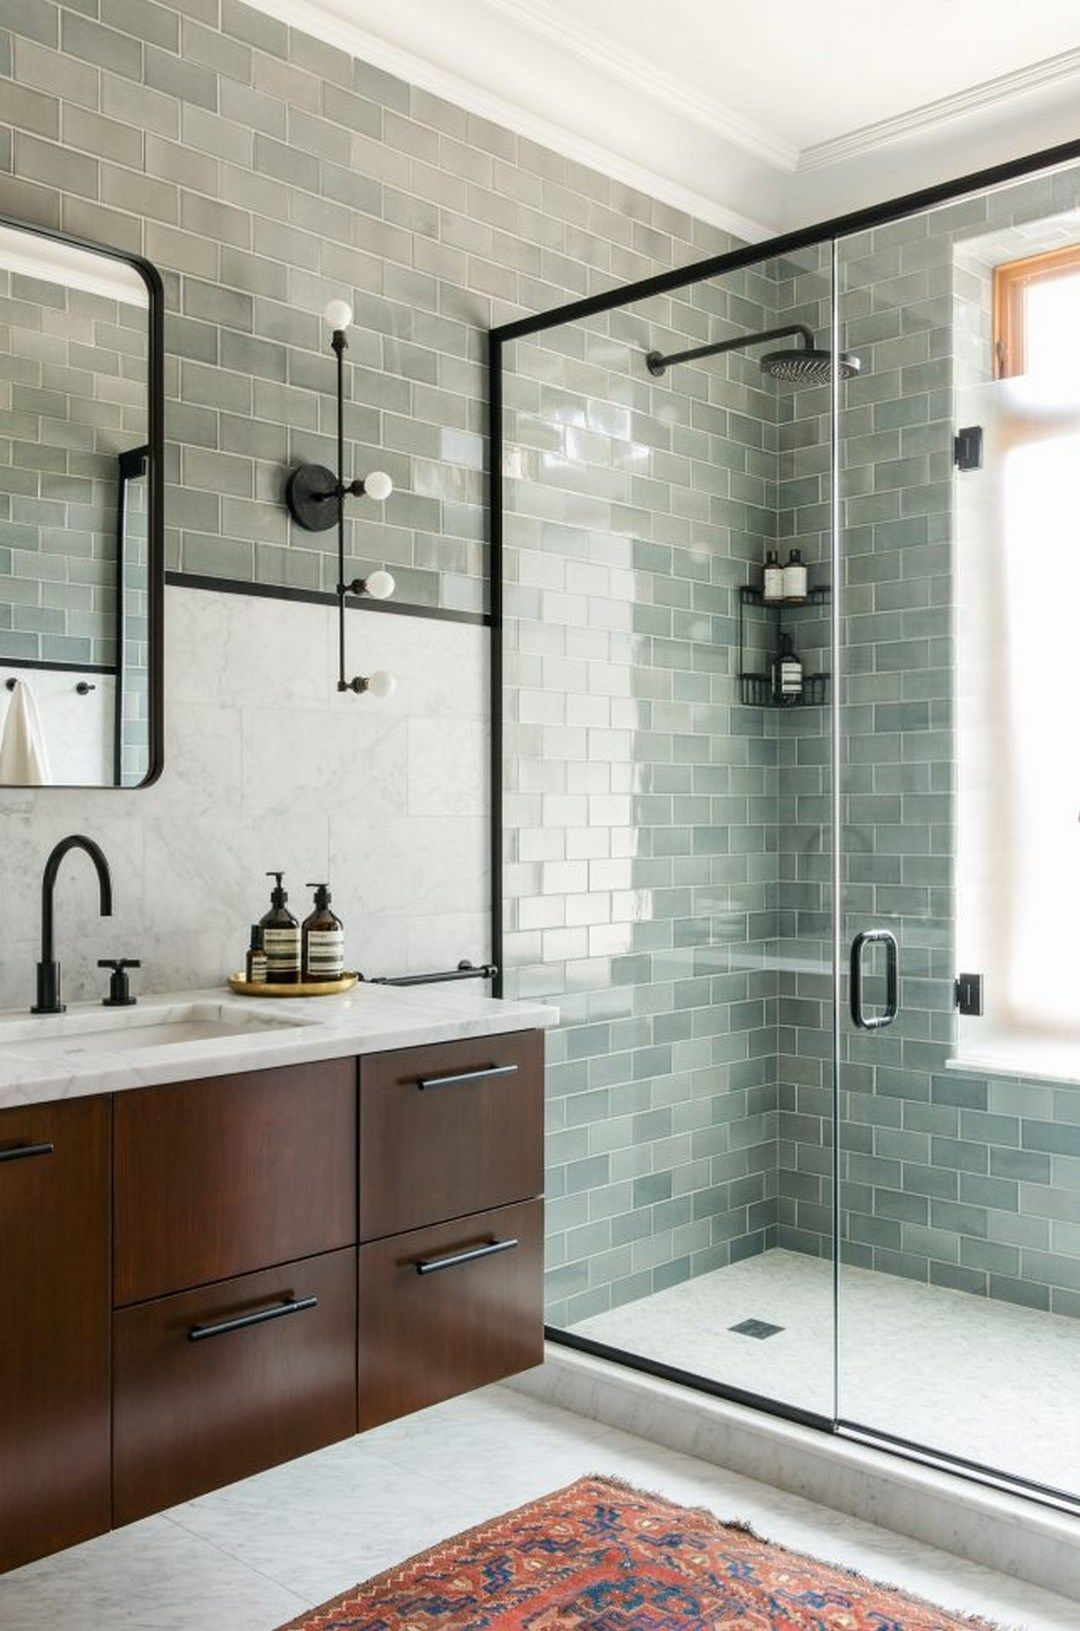 99 New Trends Bathroom Tile Design Inspiration 2017 (54) | Bathroom ...